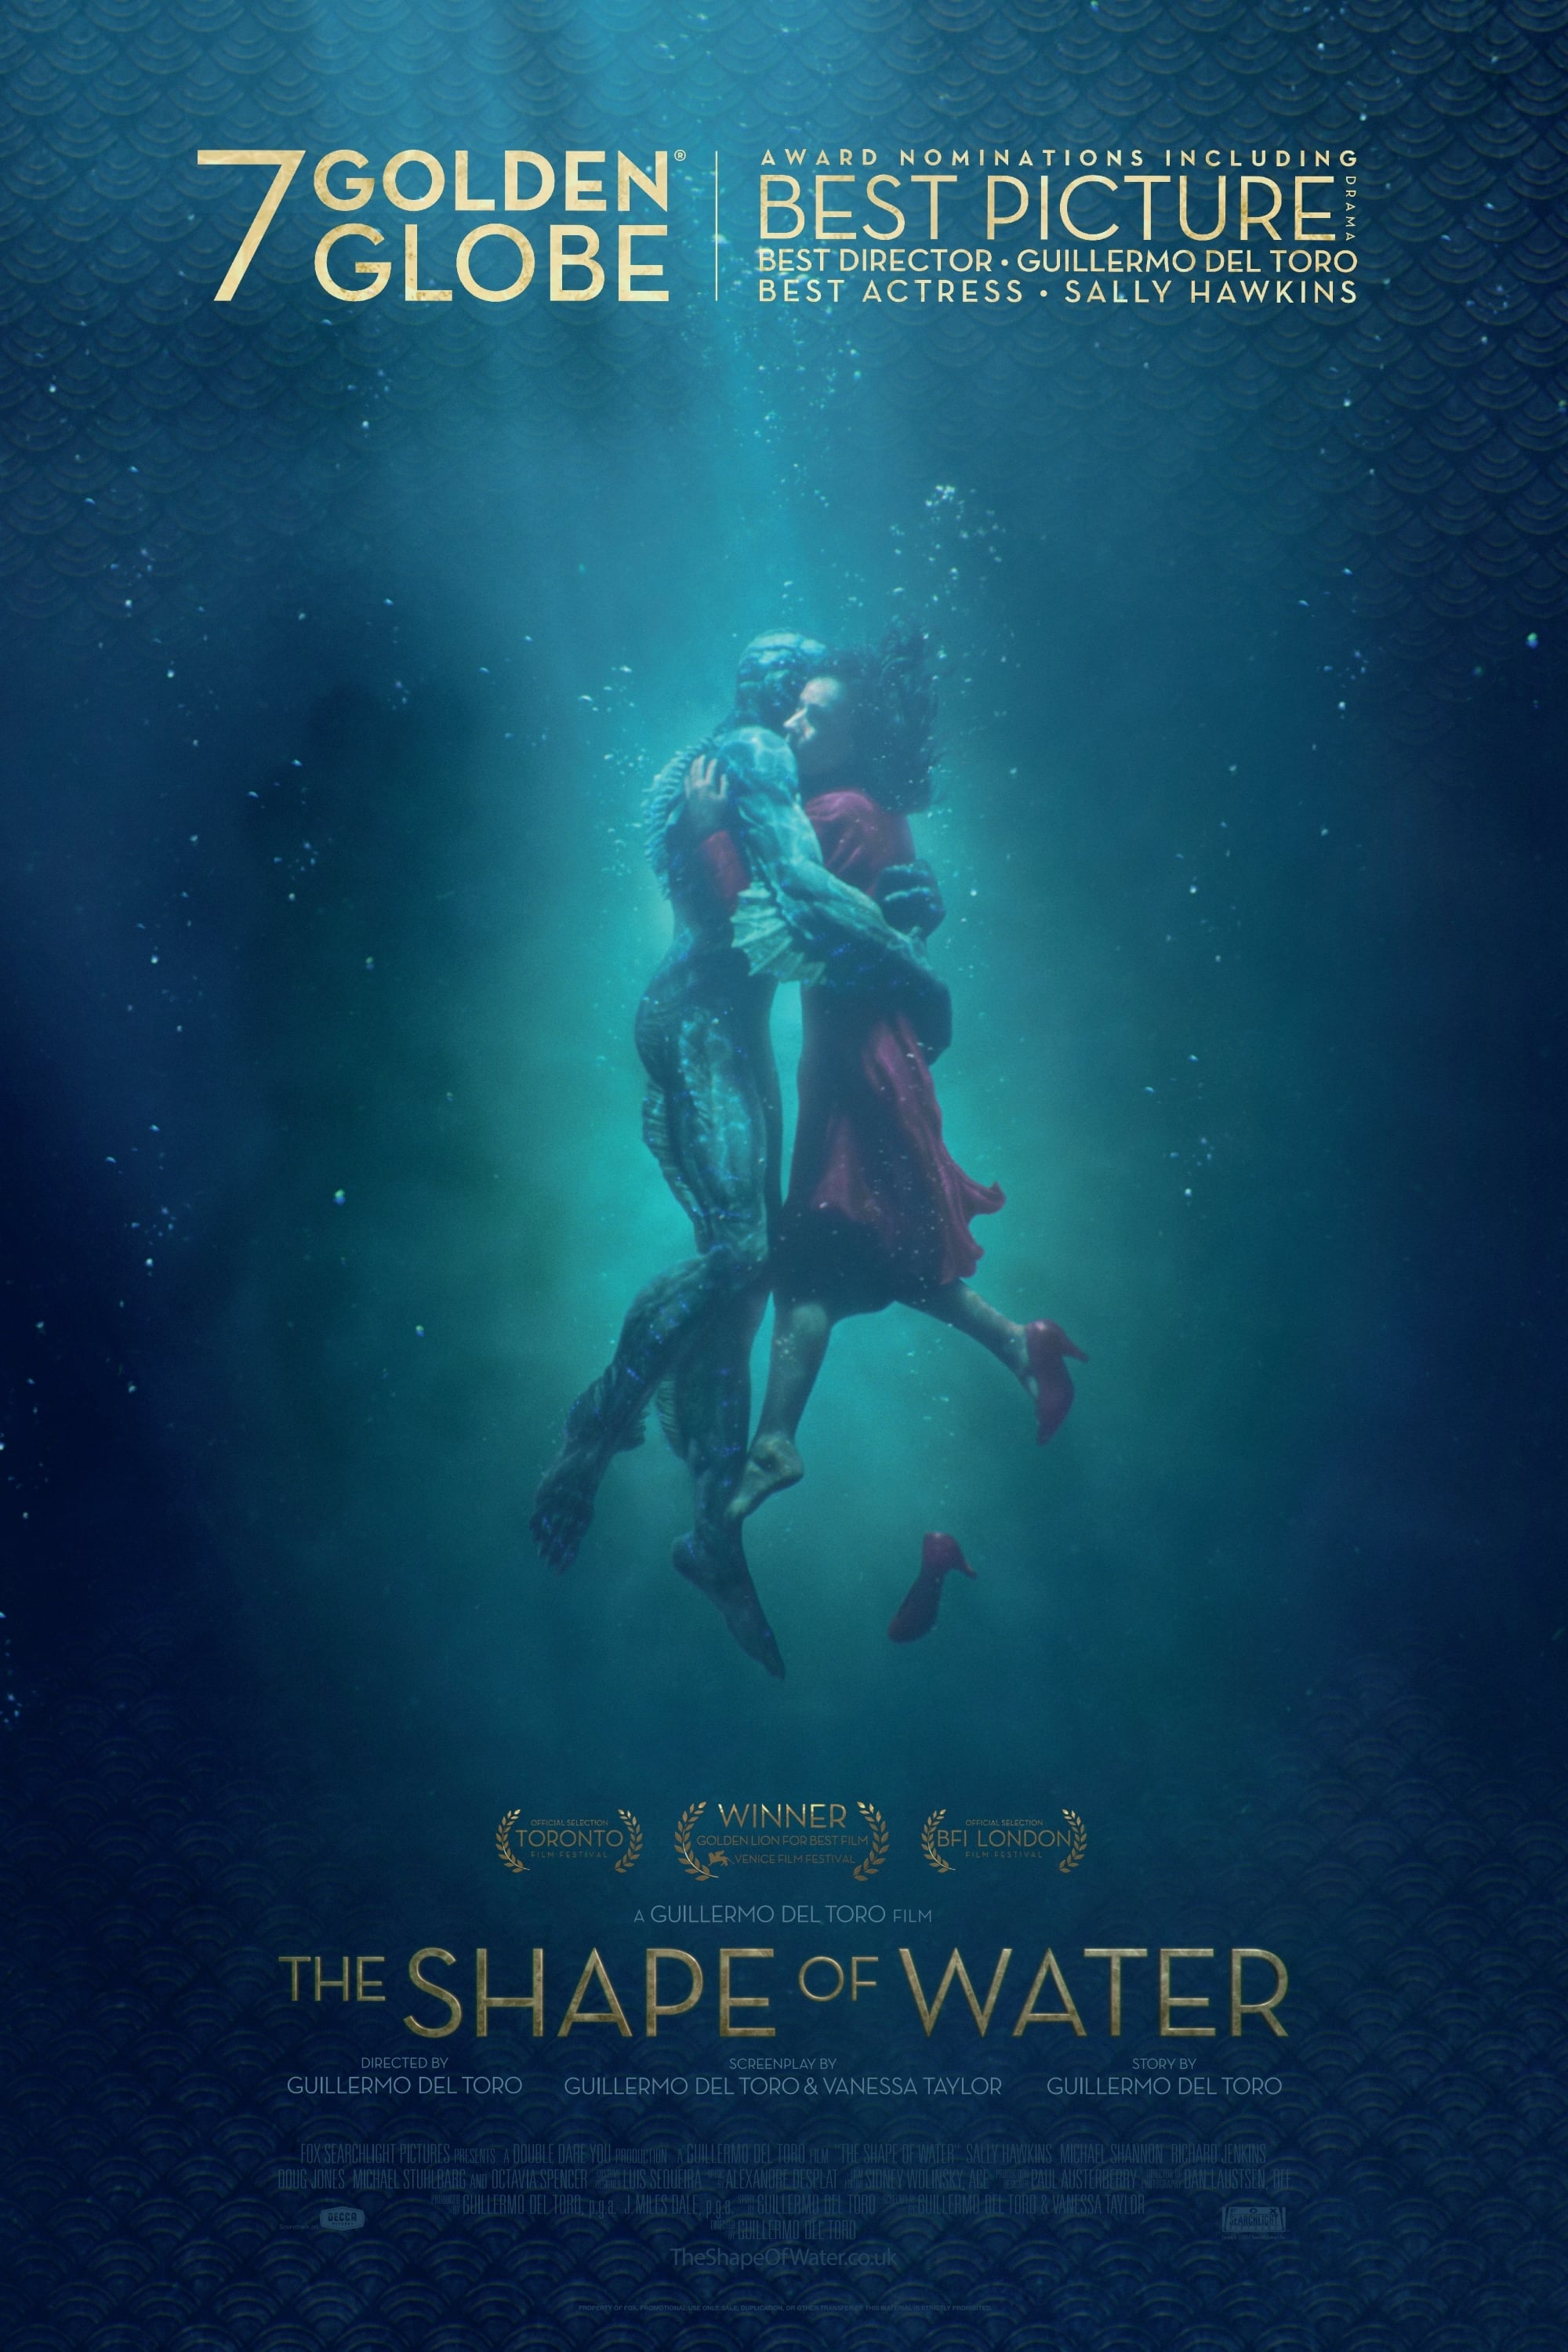 The Shape of Water (2017) BluRay | 1080p 10bit x265 [4.72 GB] | 720p x264 [1.5 GB]| Hindi-English